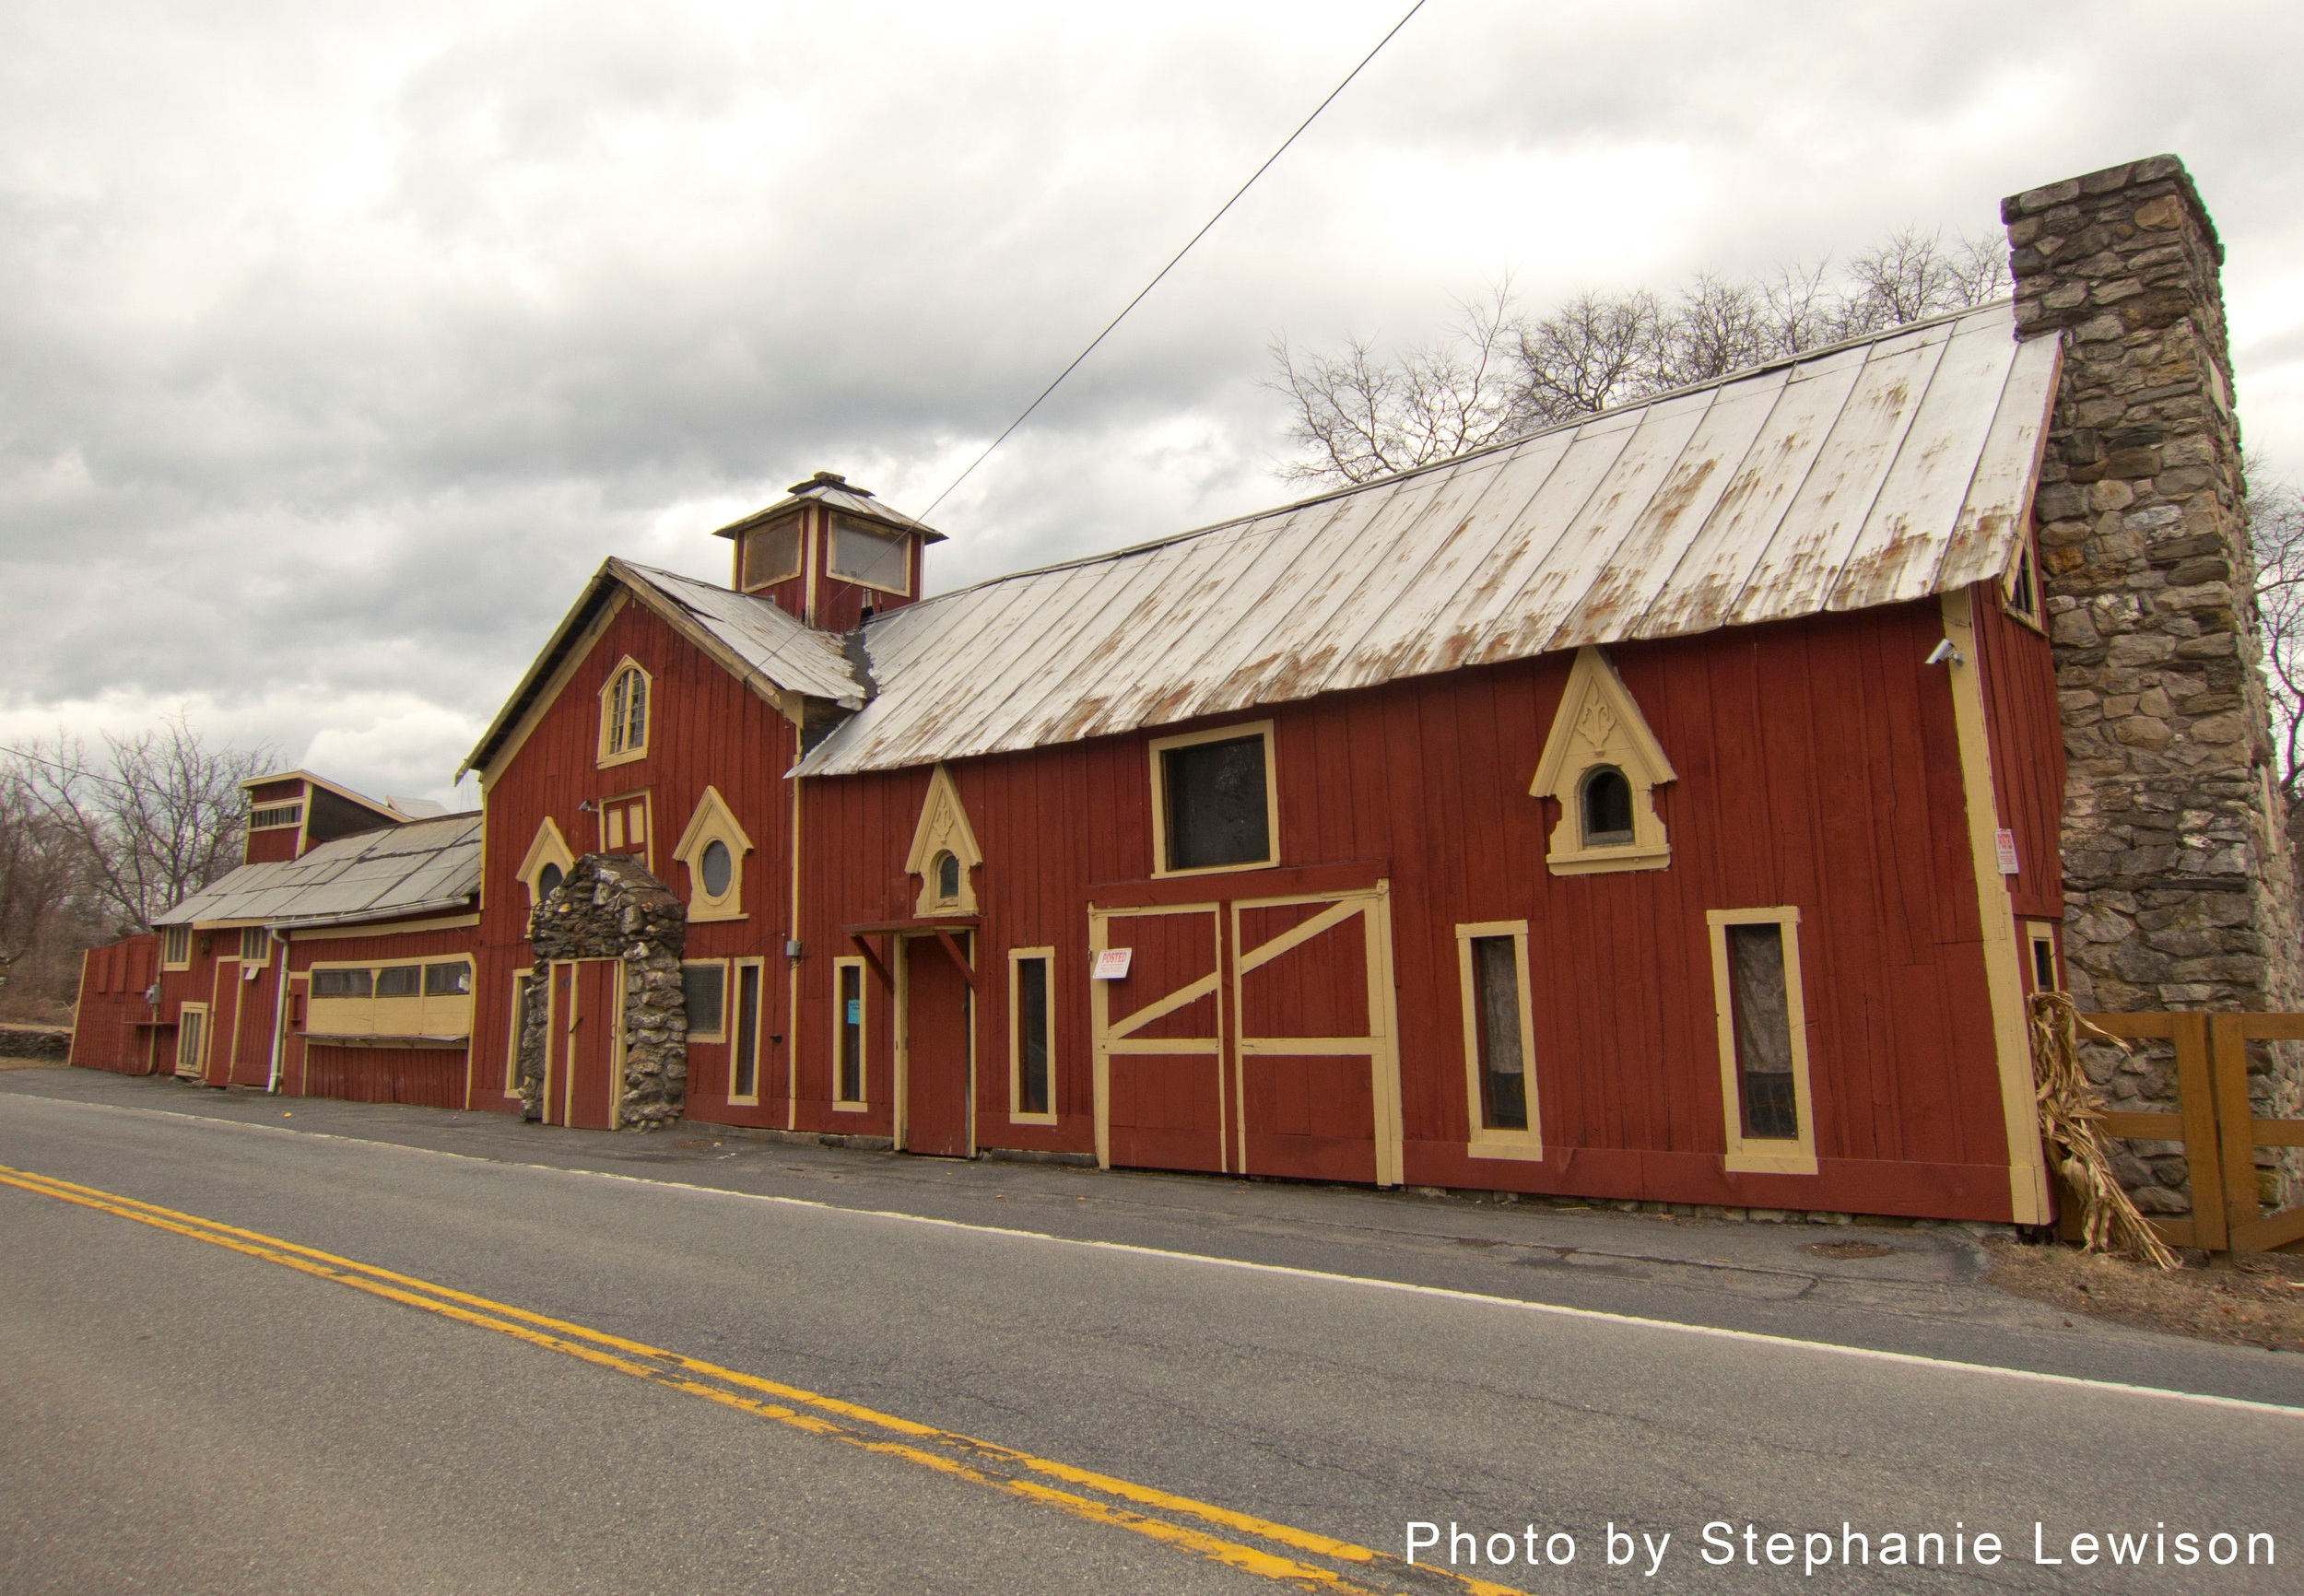 Cider Mill Friends of Open Space & Historic Preservation, Inc., The Kimlin Cider Mill